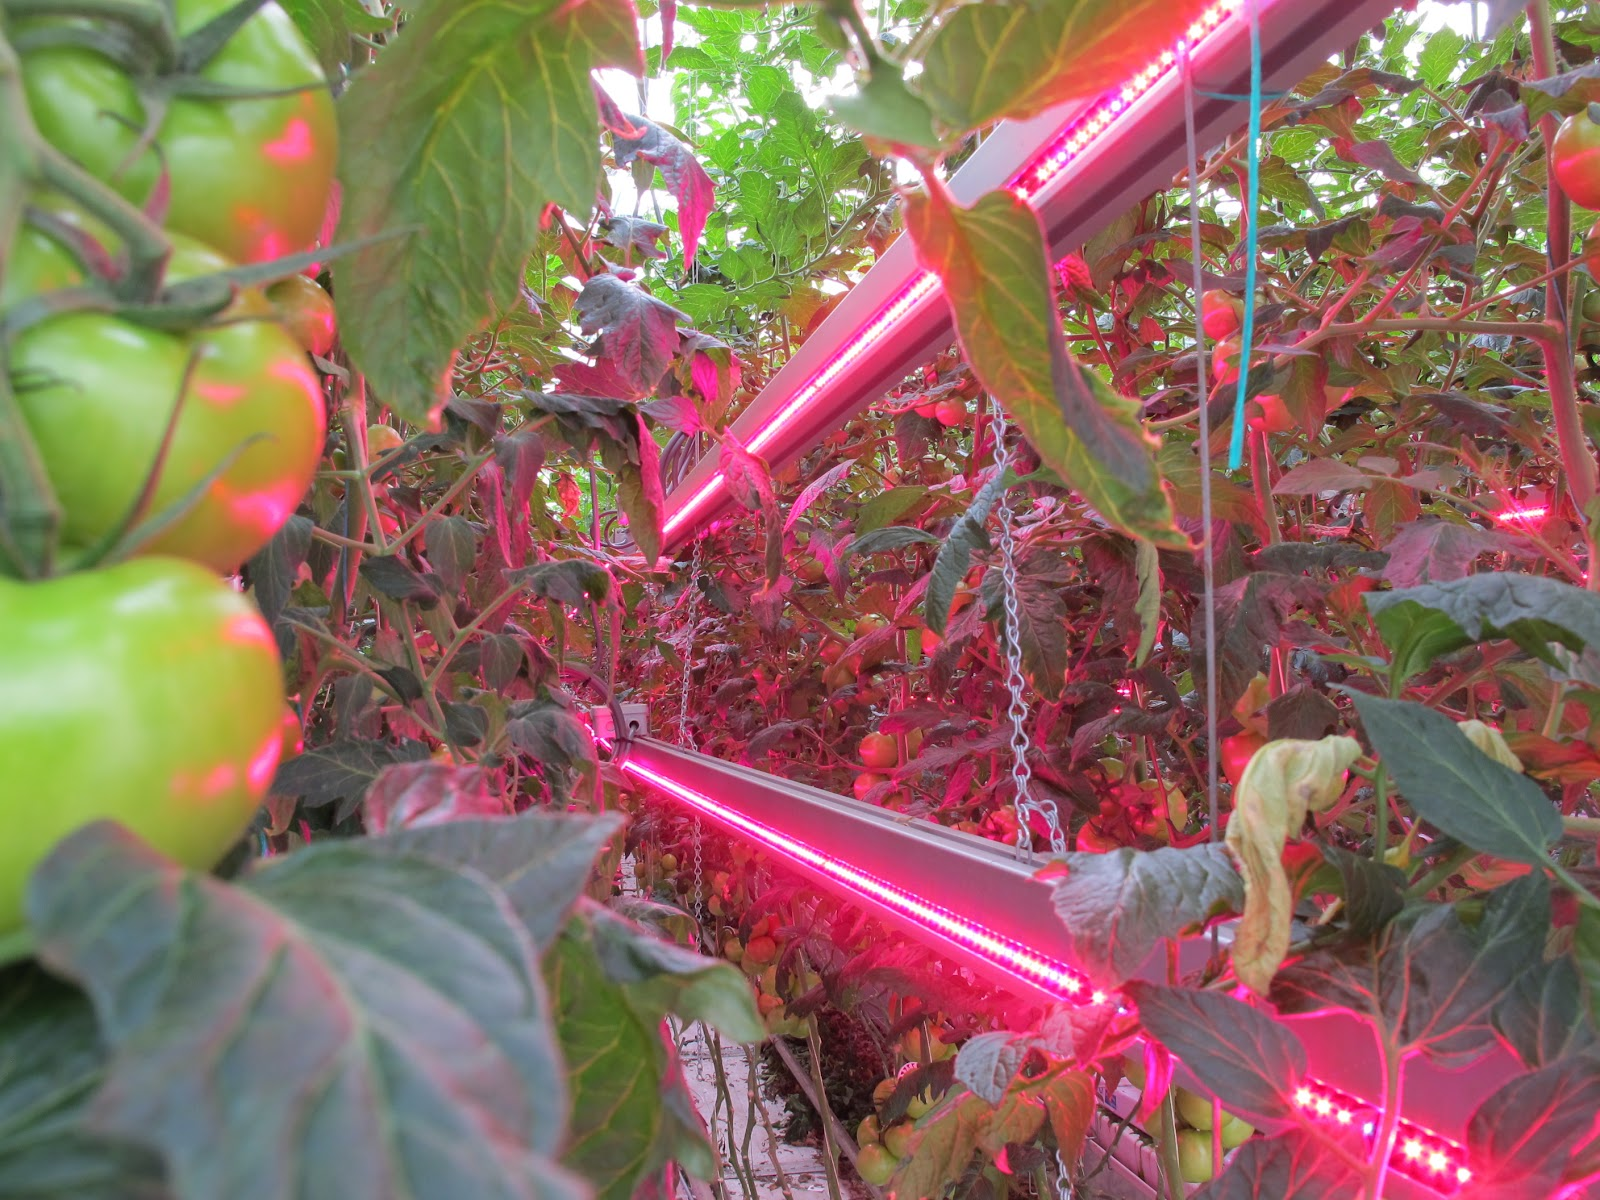 LED Interlighting Modules used in Greenhouse Tomatoes & LED Grow Lights u2013 Hort Americas